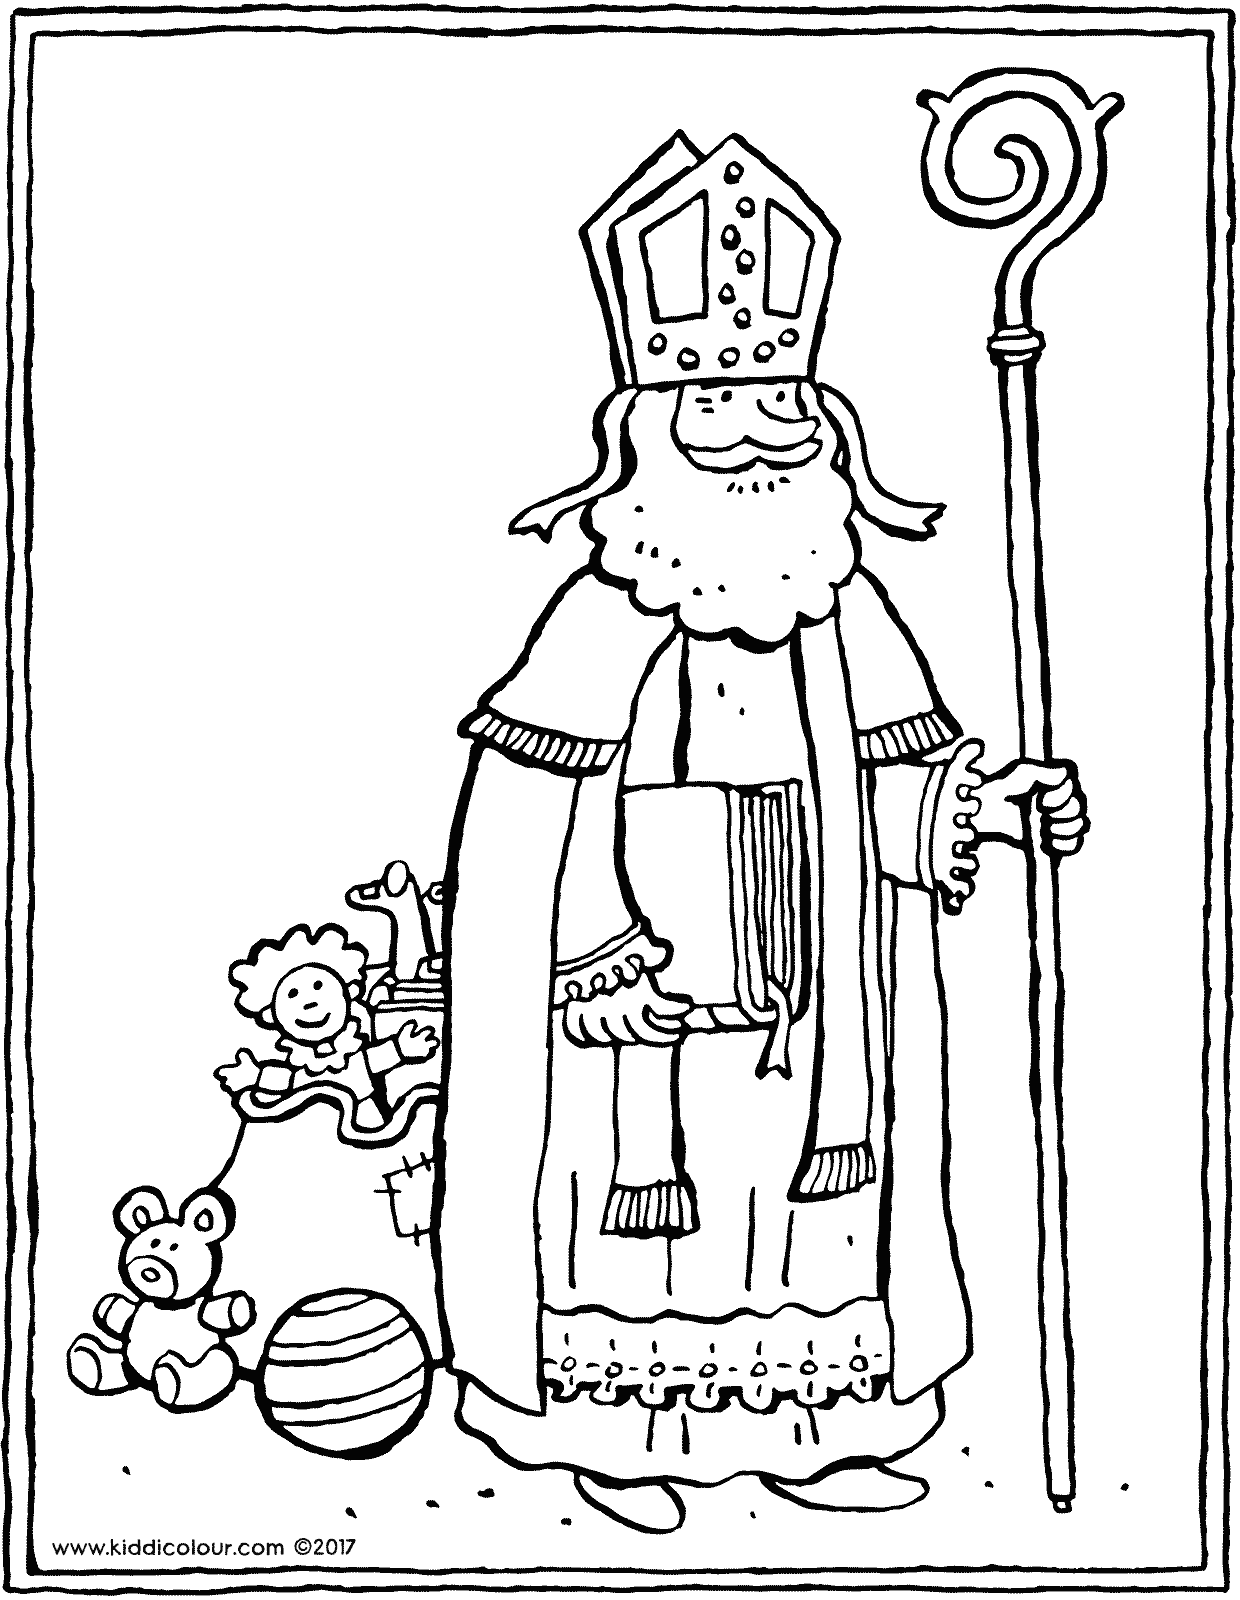 Saint Nicholas with bag of toys colouring page drawing picture 01V